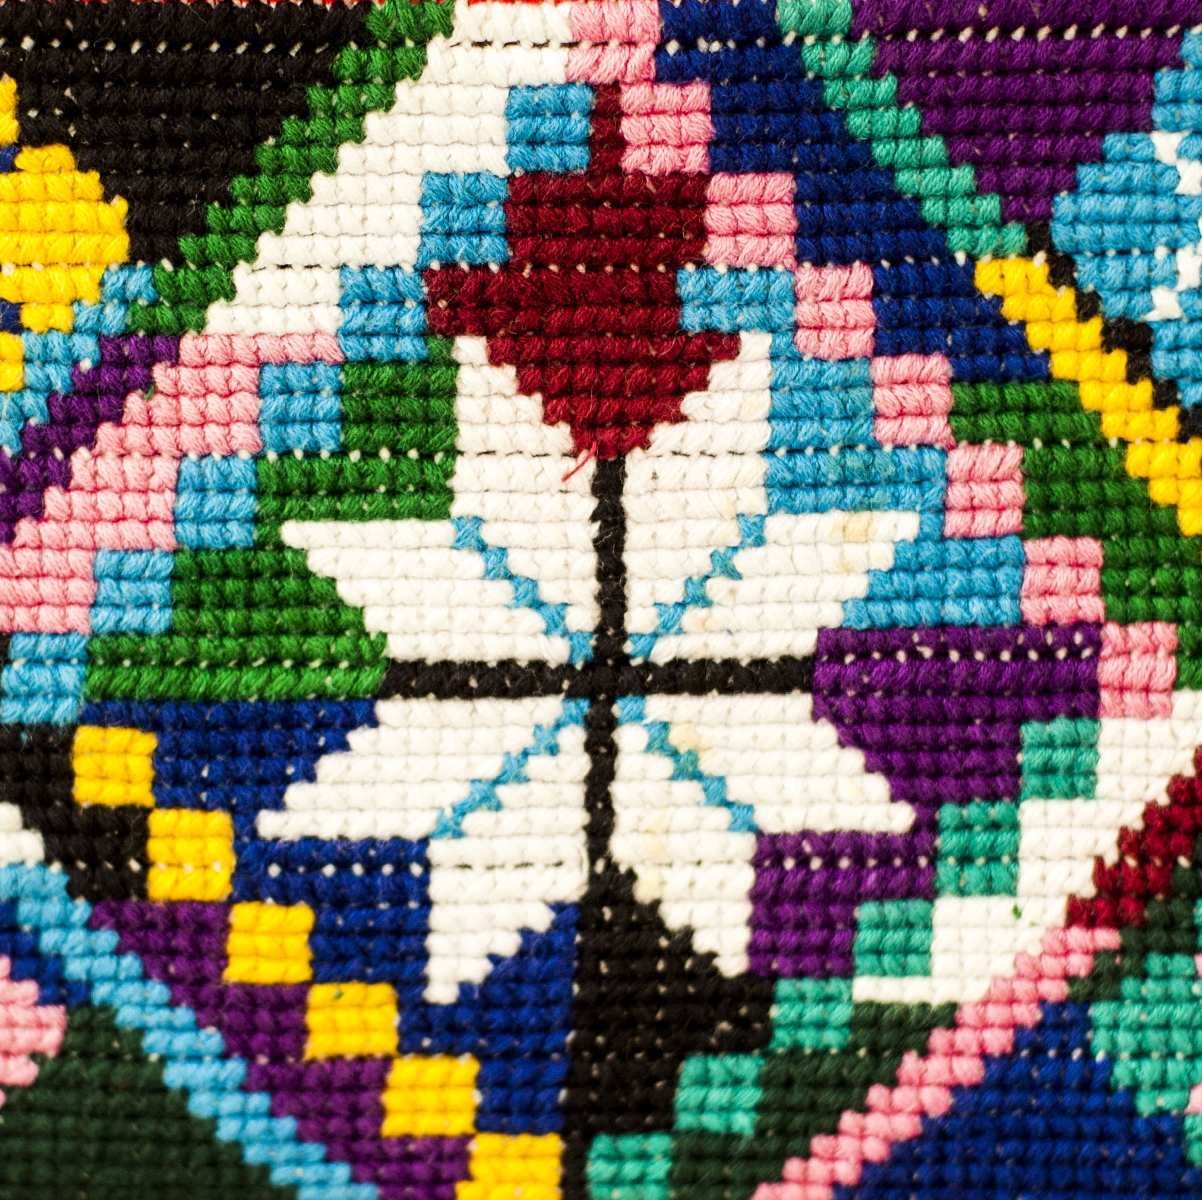 Weavers make huipiles, a detail of which can be seen at right. Huipiles have been worn by indigenous women in Mexico and Central America since before the era of Spanish colonialism.